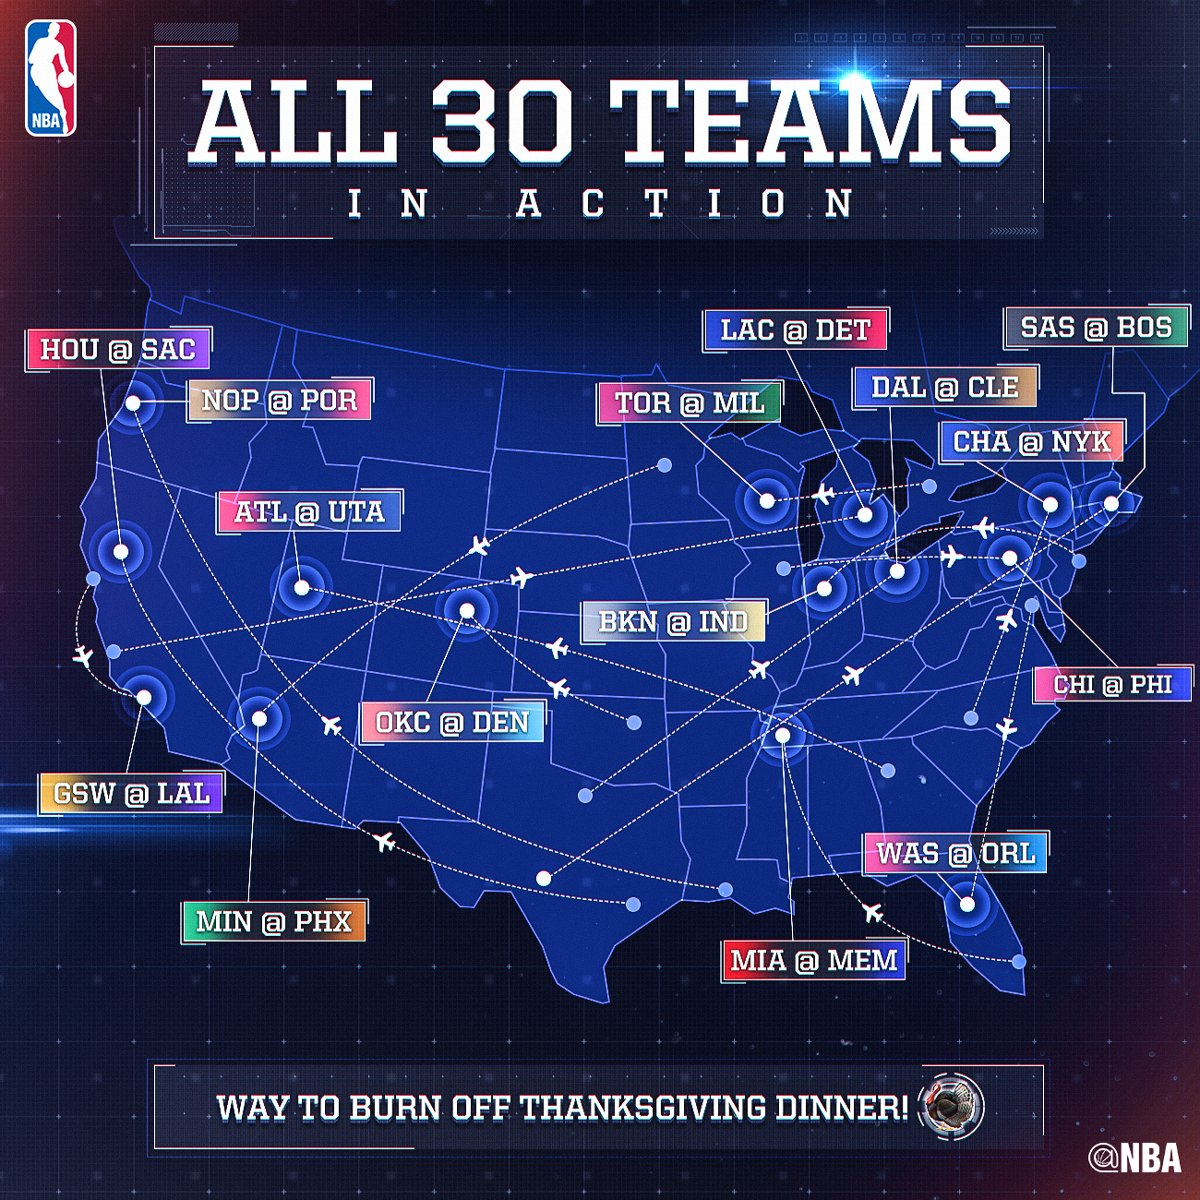 what teams play today in the nba